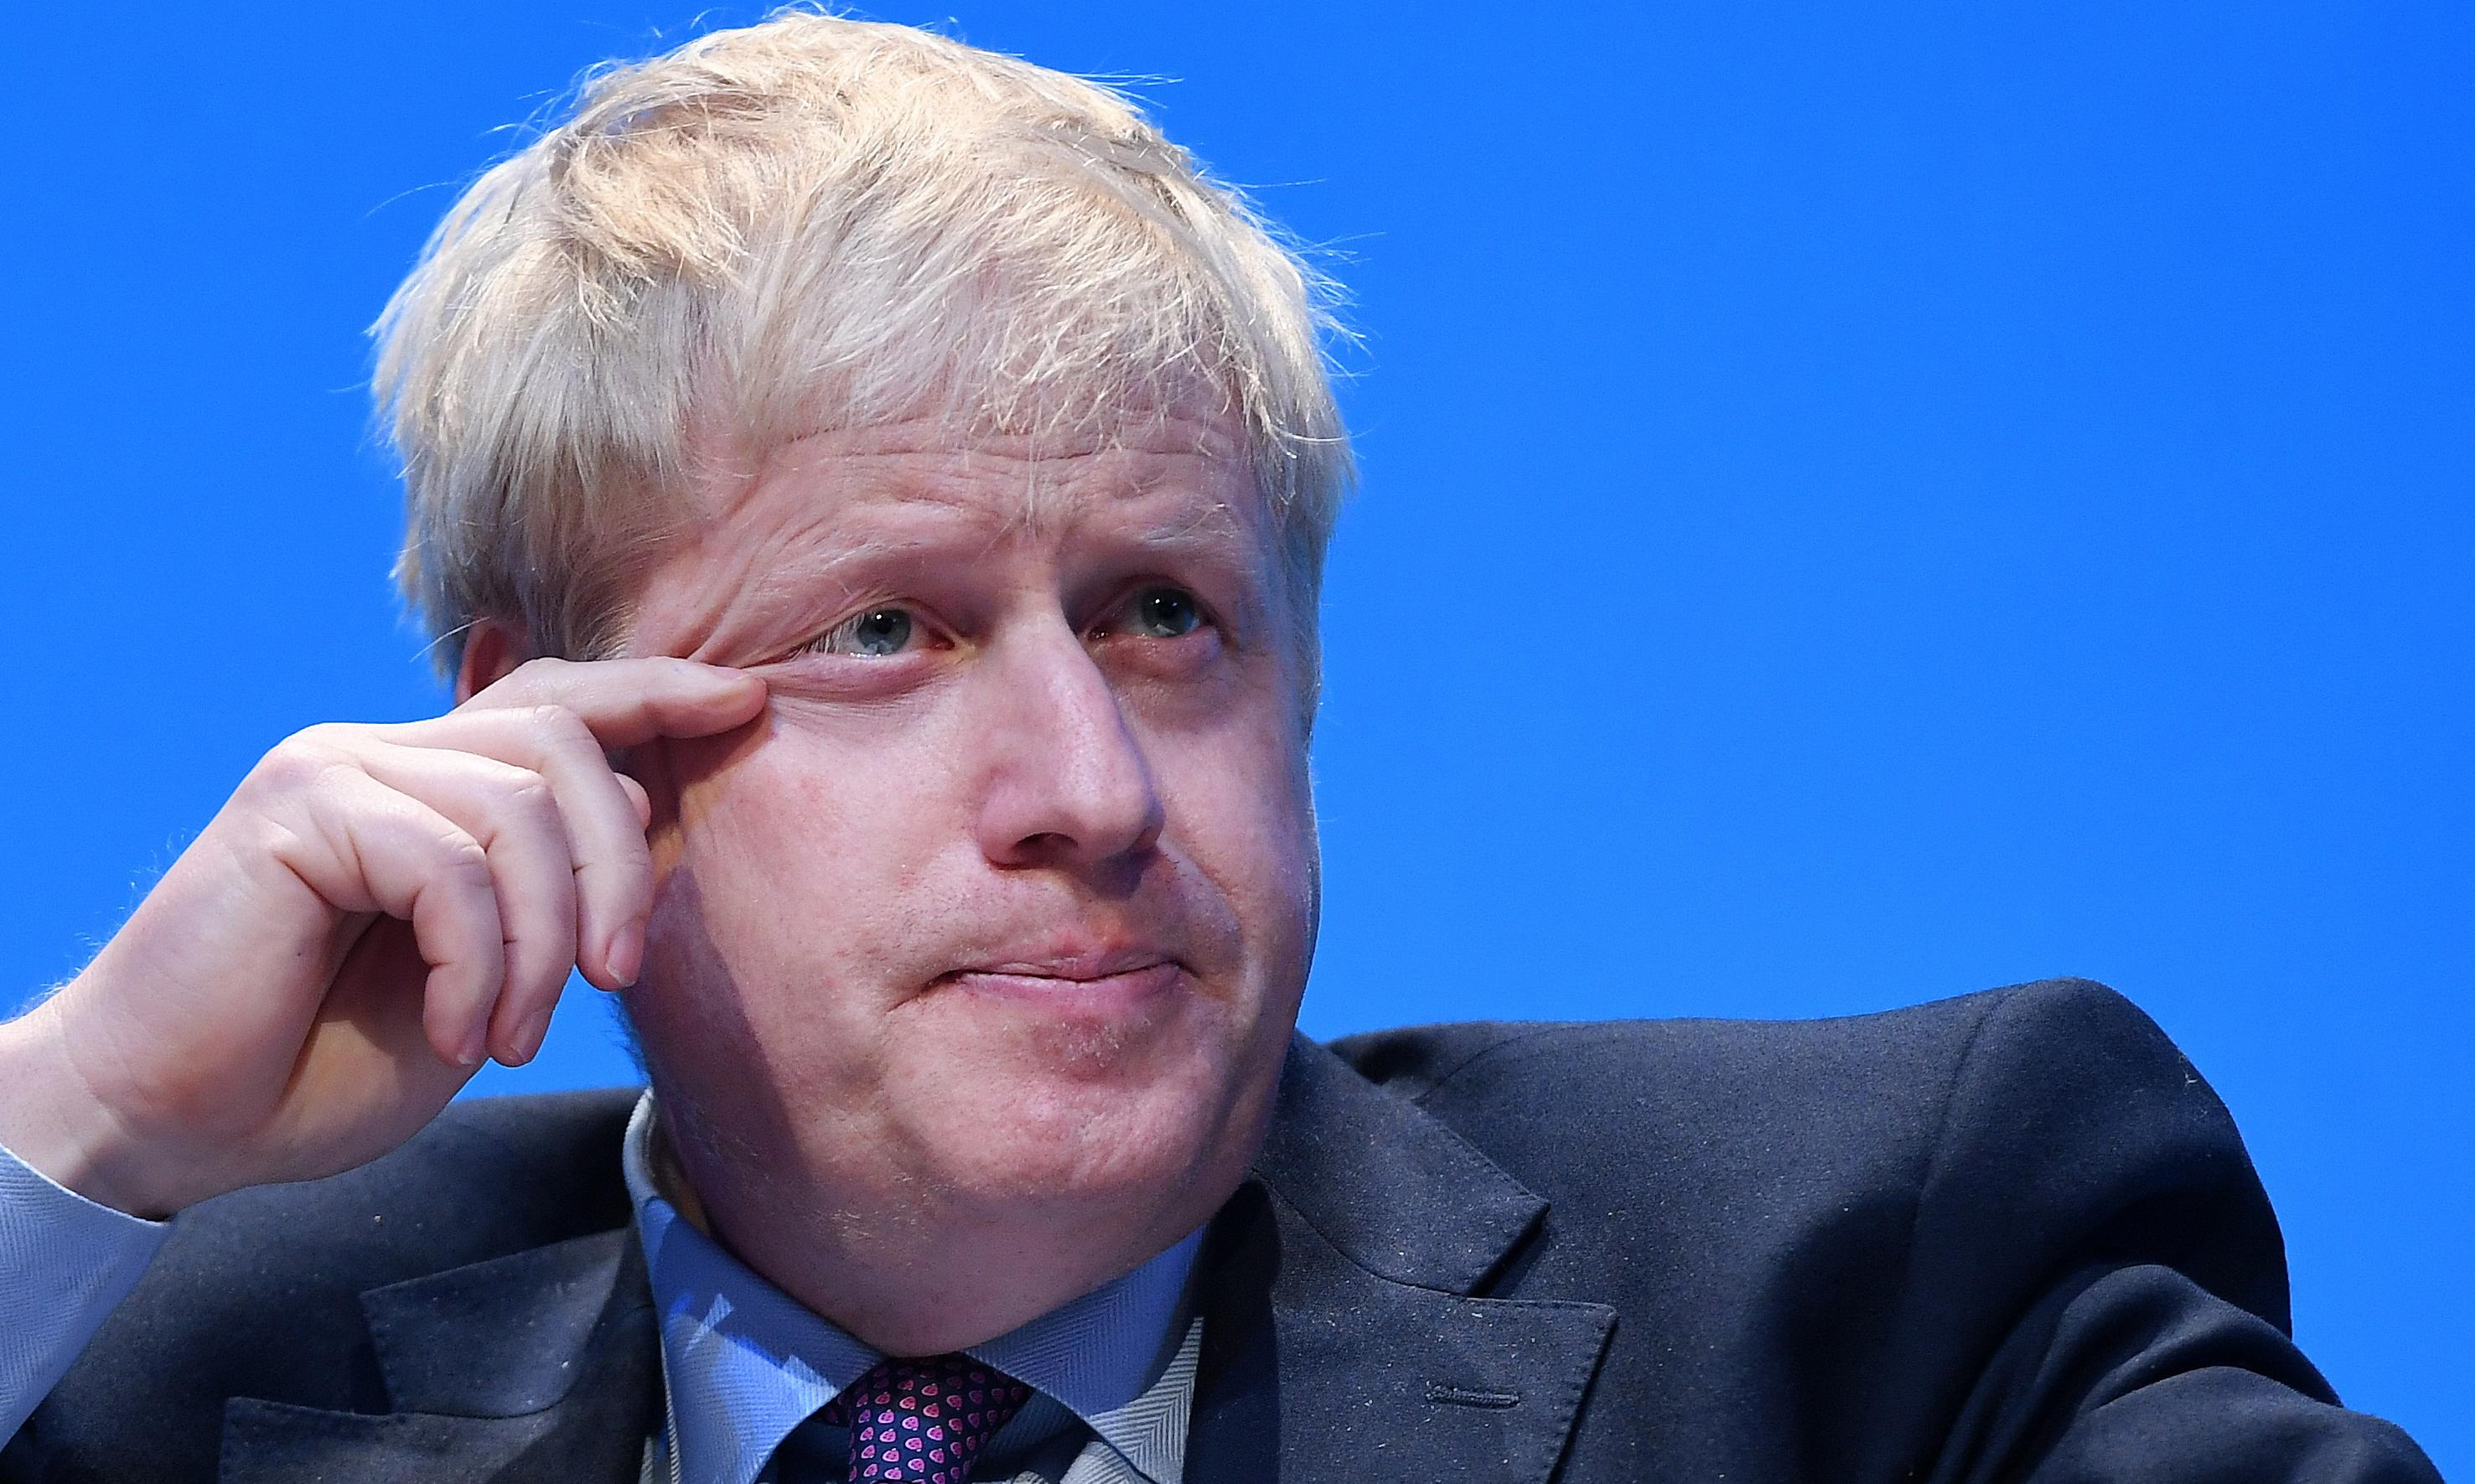 The Guardian view on Boris Johnson: a question of character